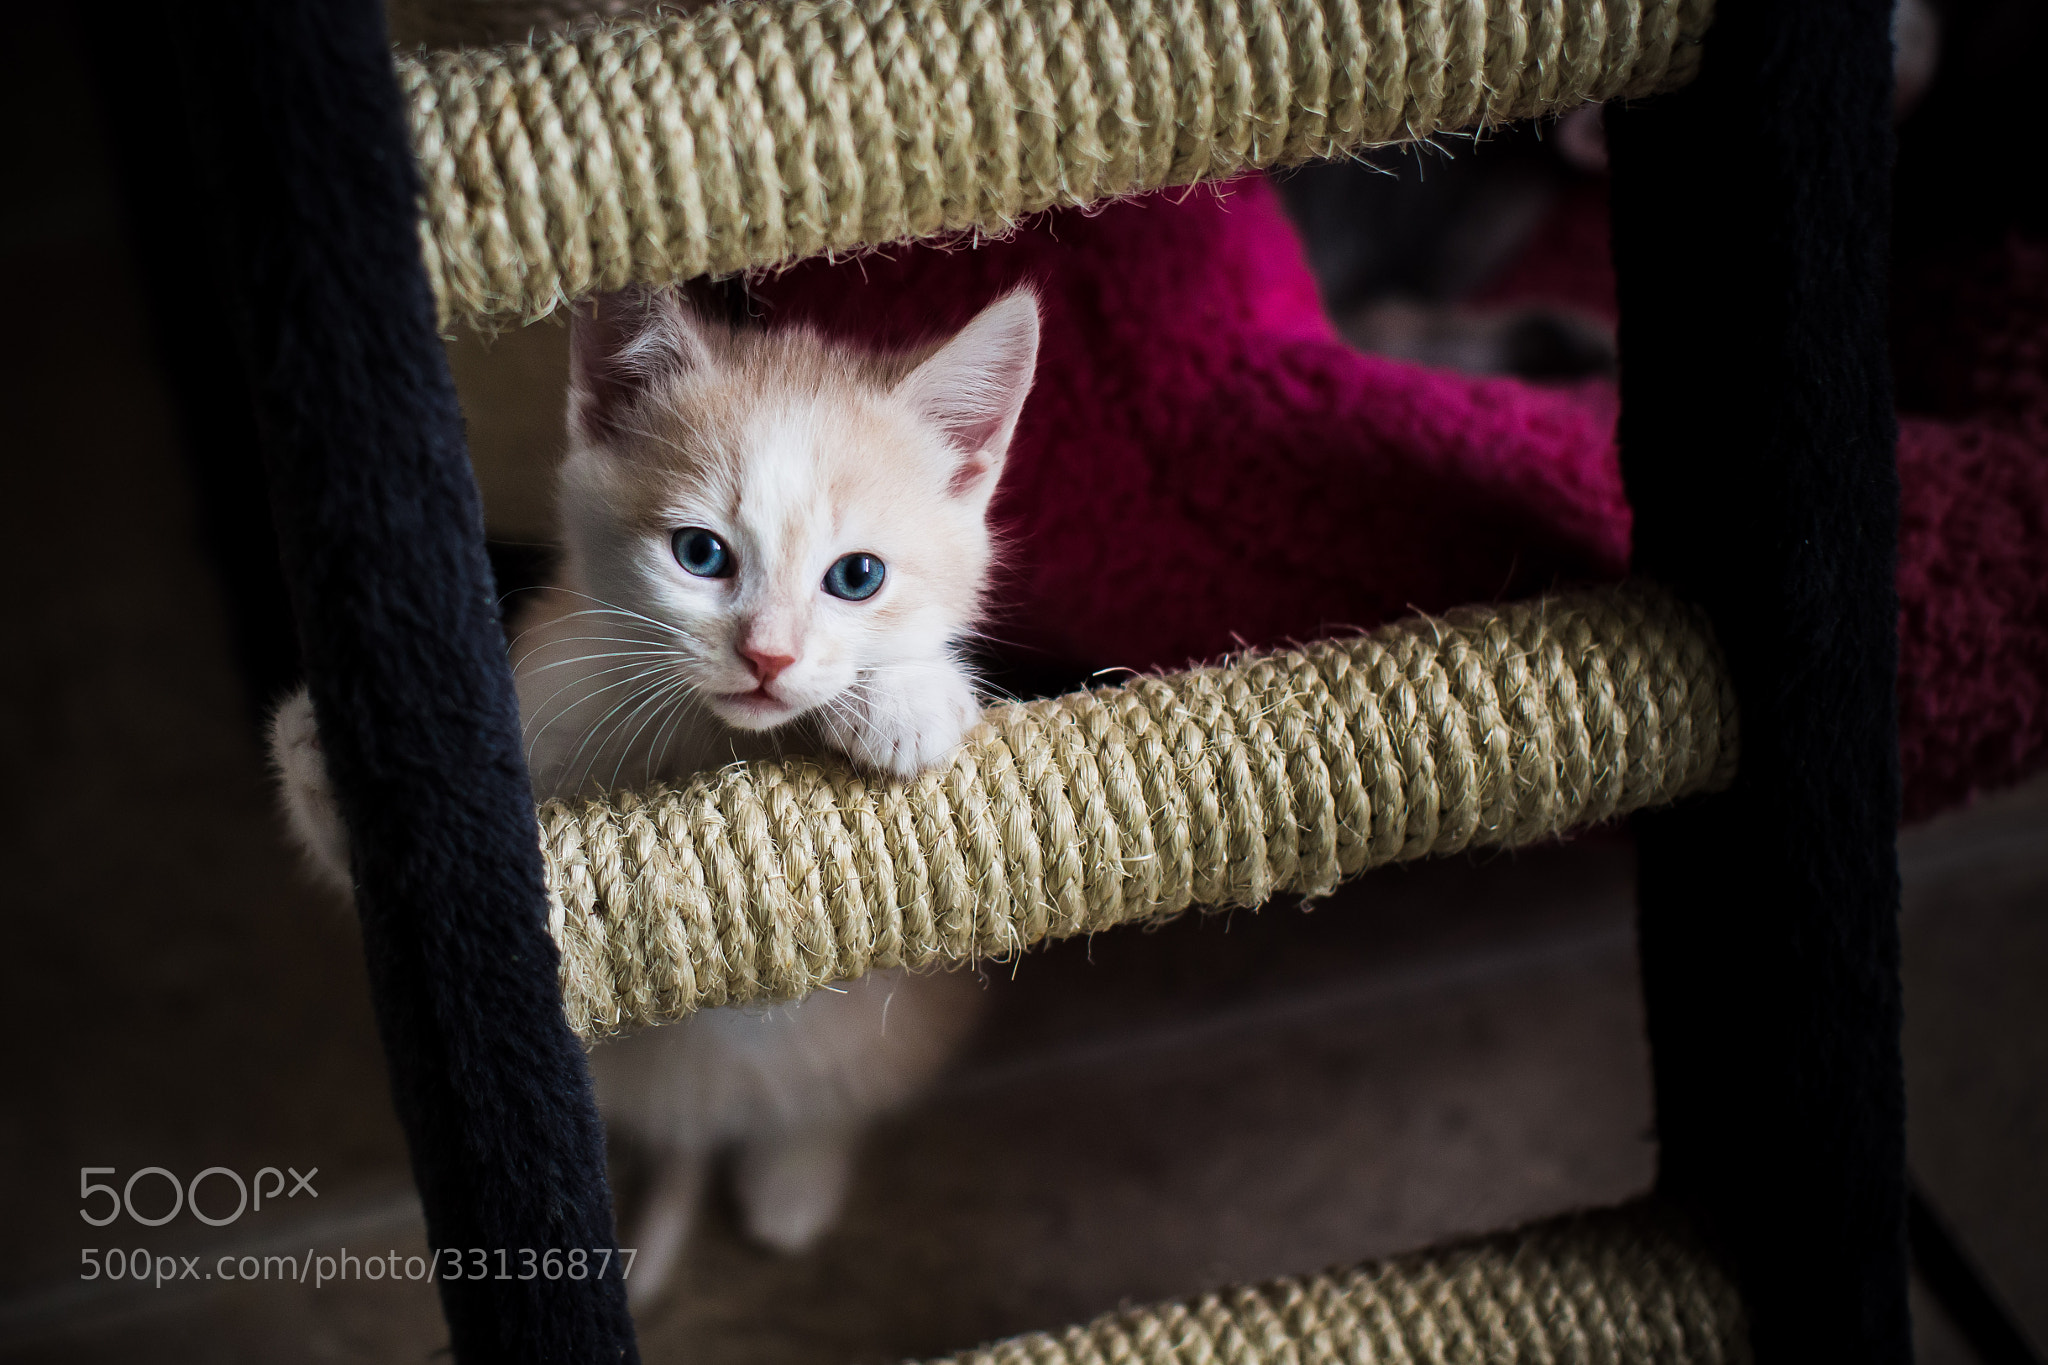 Photograph Kitten introduced to the world by Lee Ys on 500px